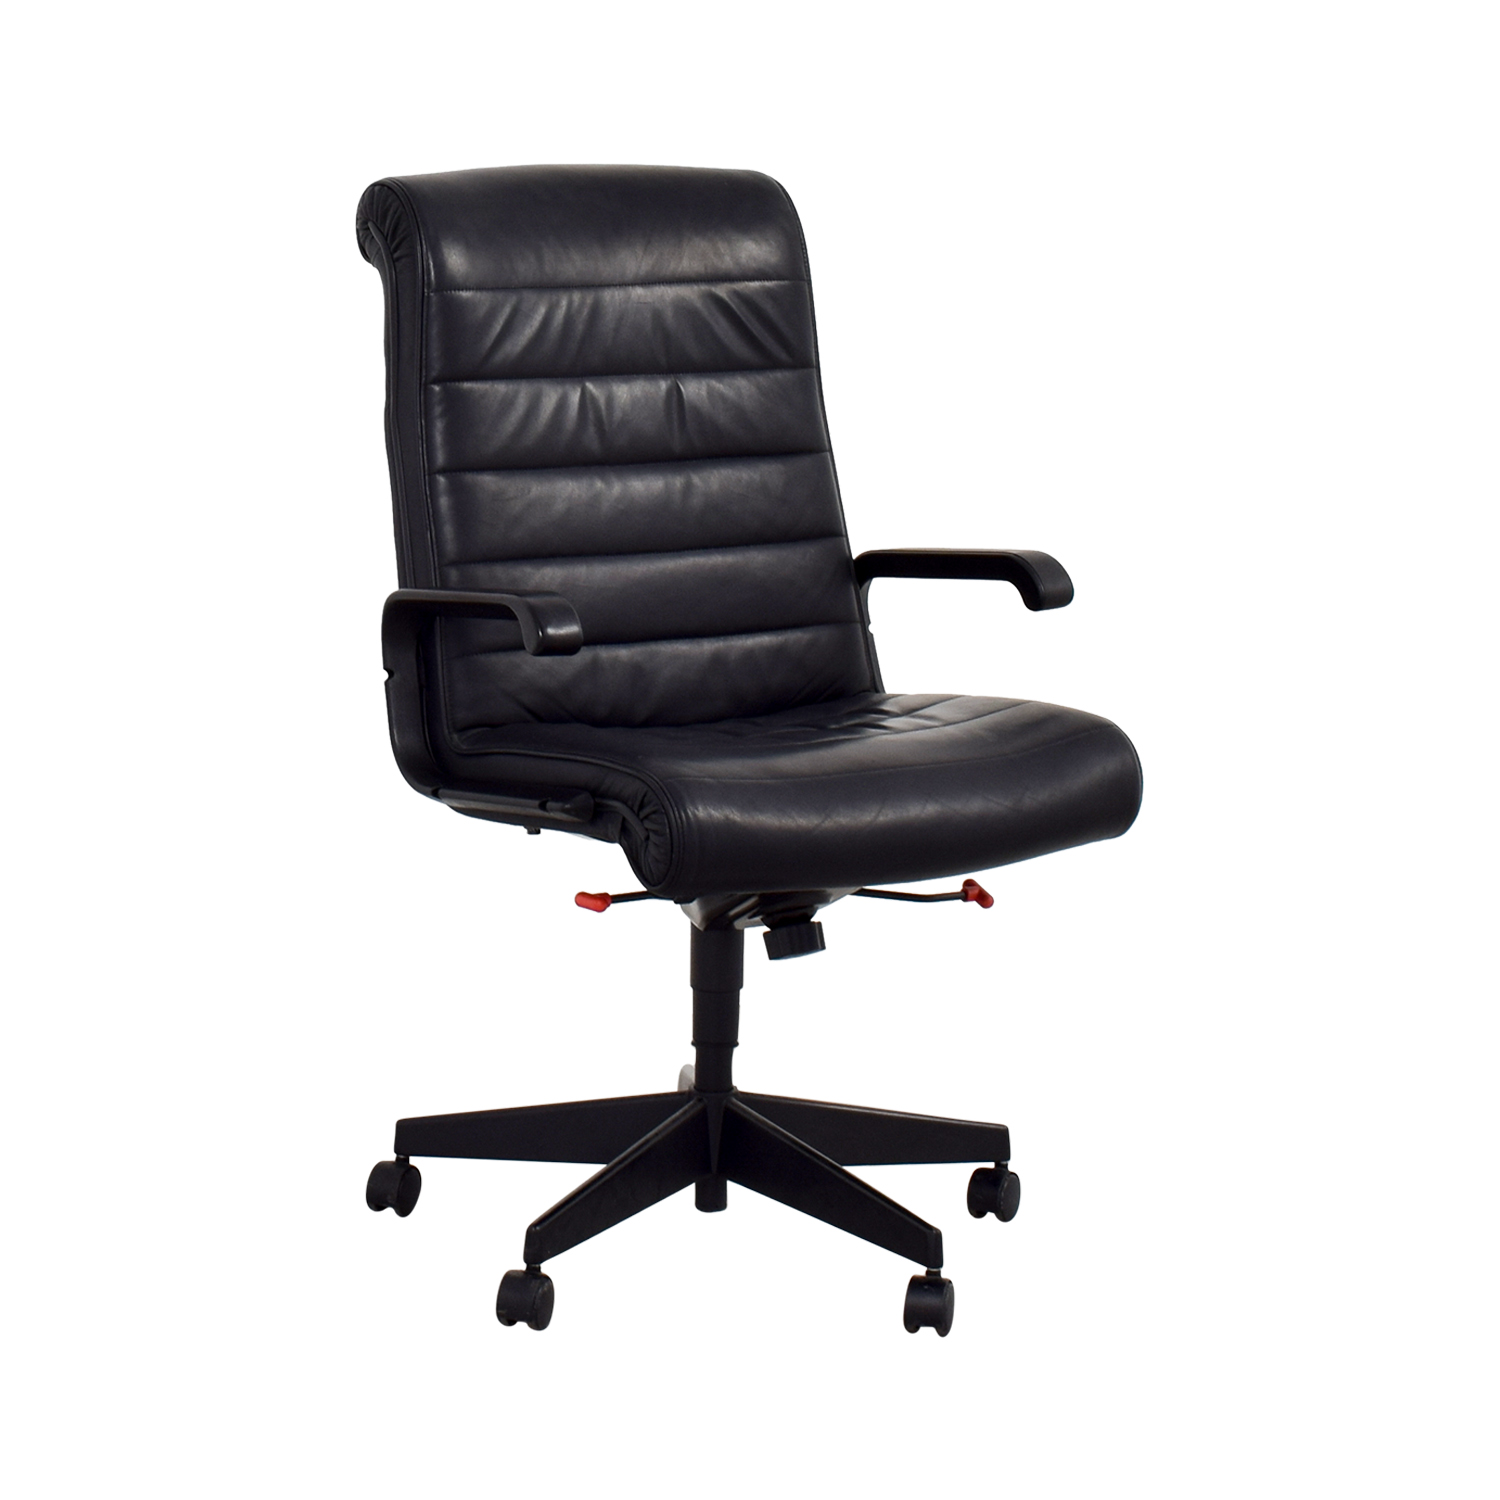 cheap hand chair swing in bangladesh 90 off black leather office chairs